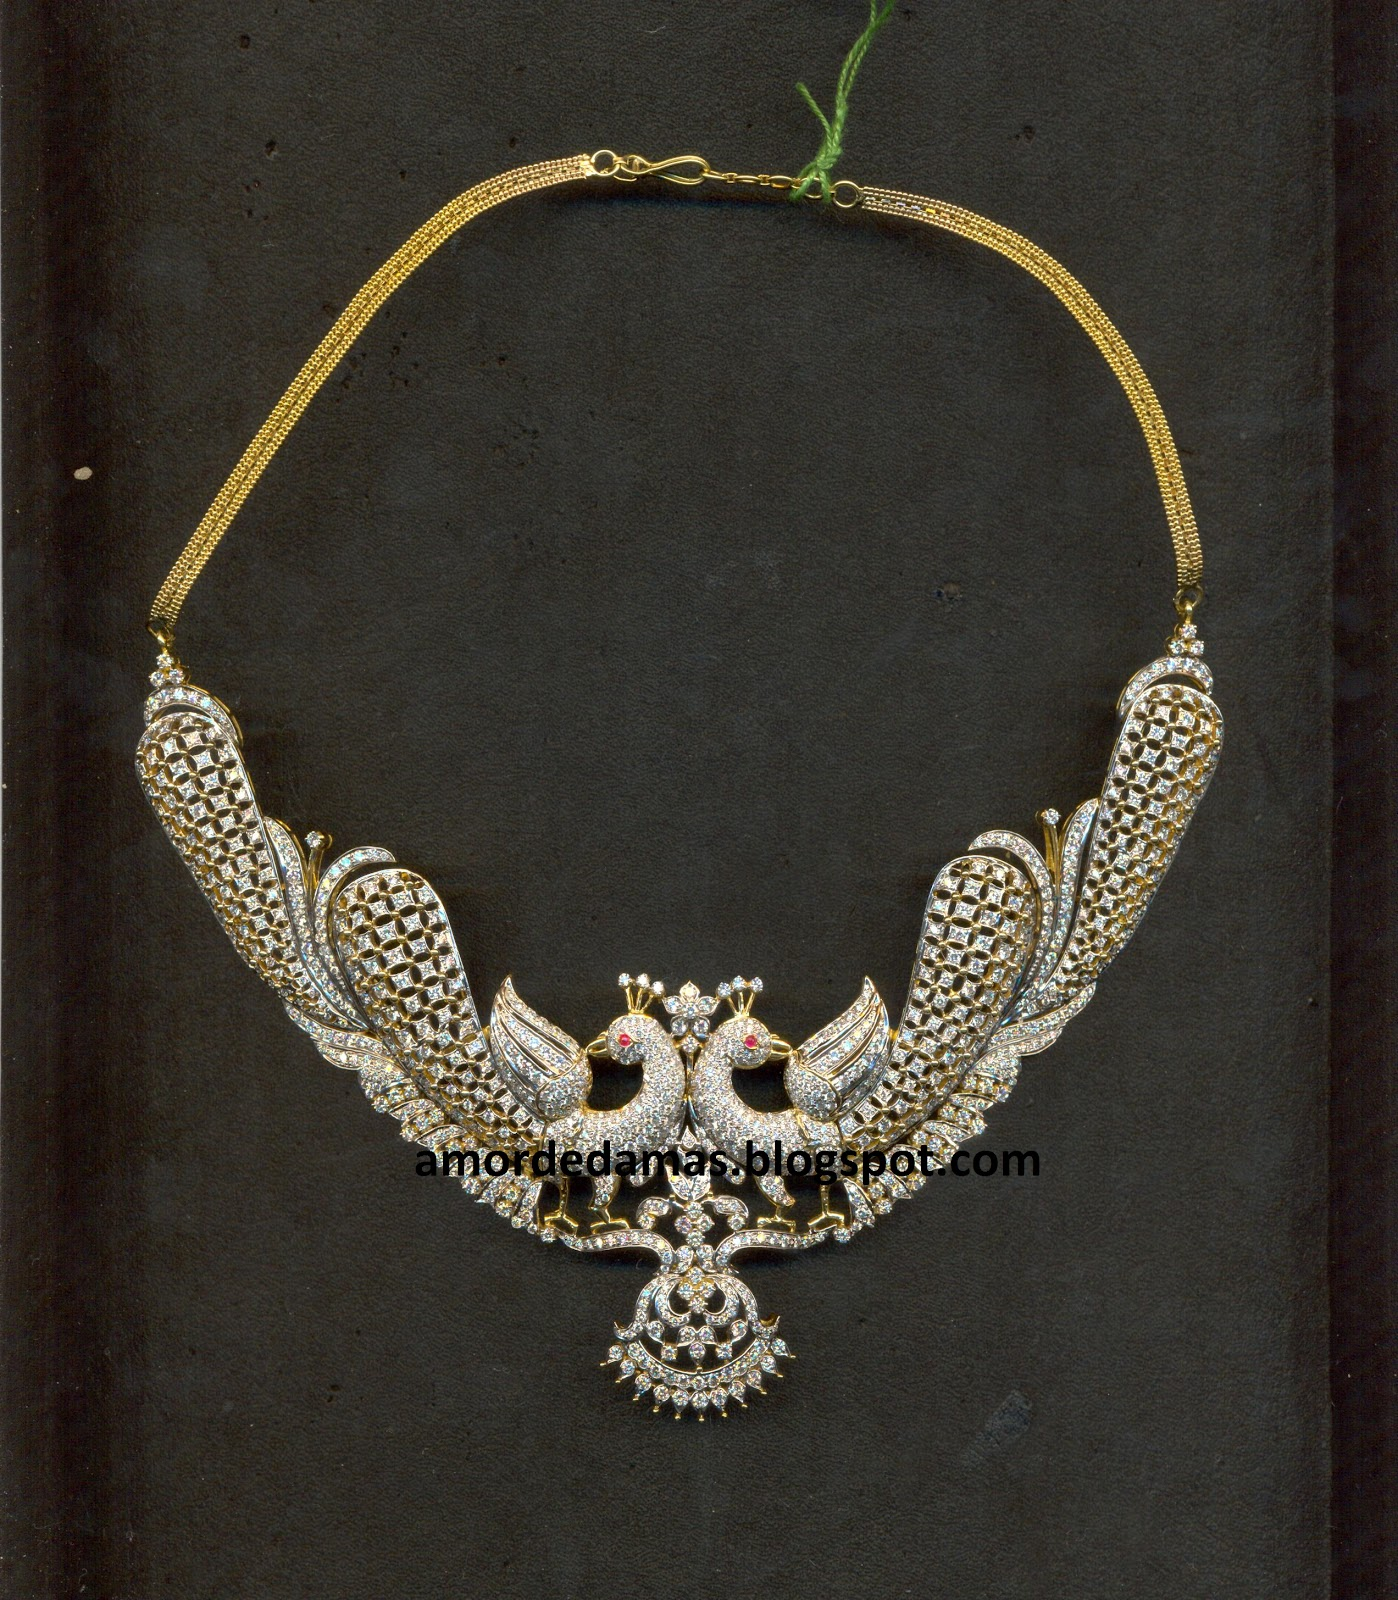 Its all about jewellery: Diamond Necklace designs